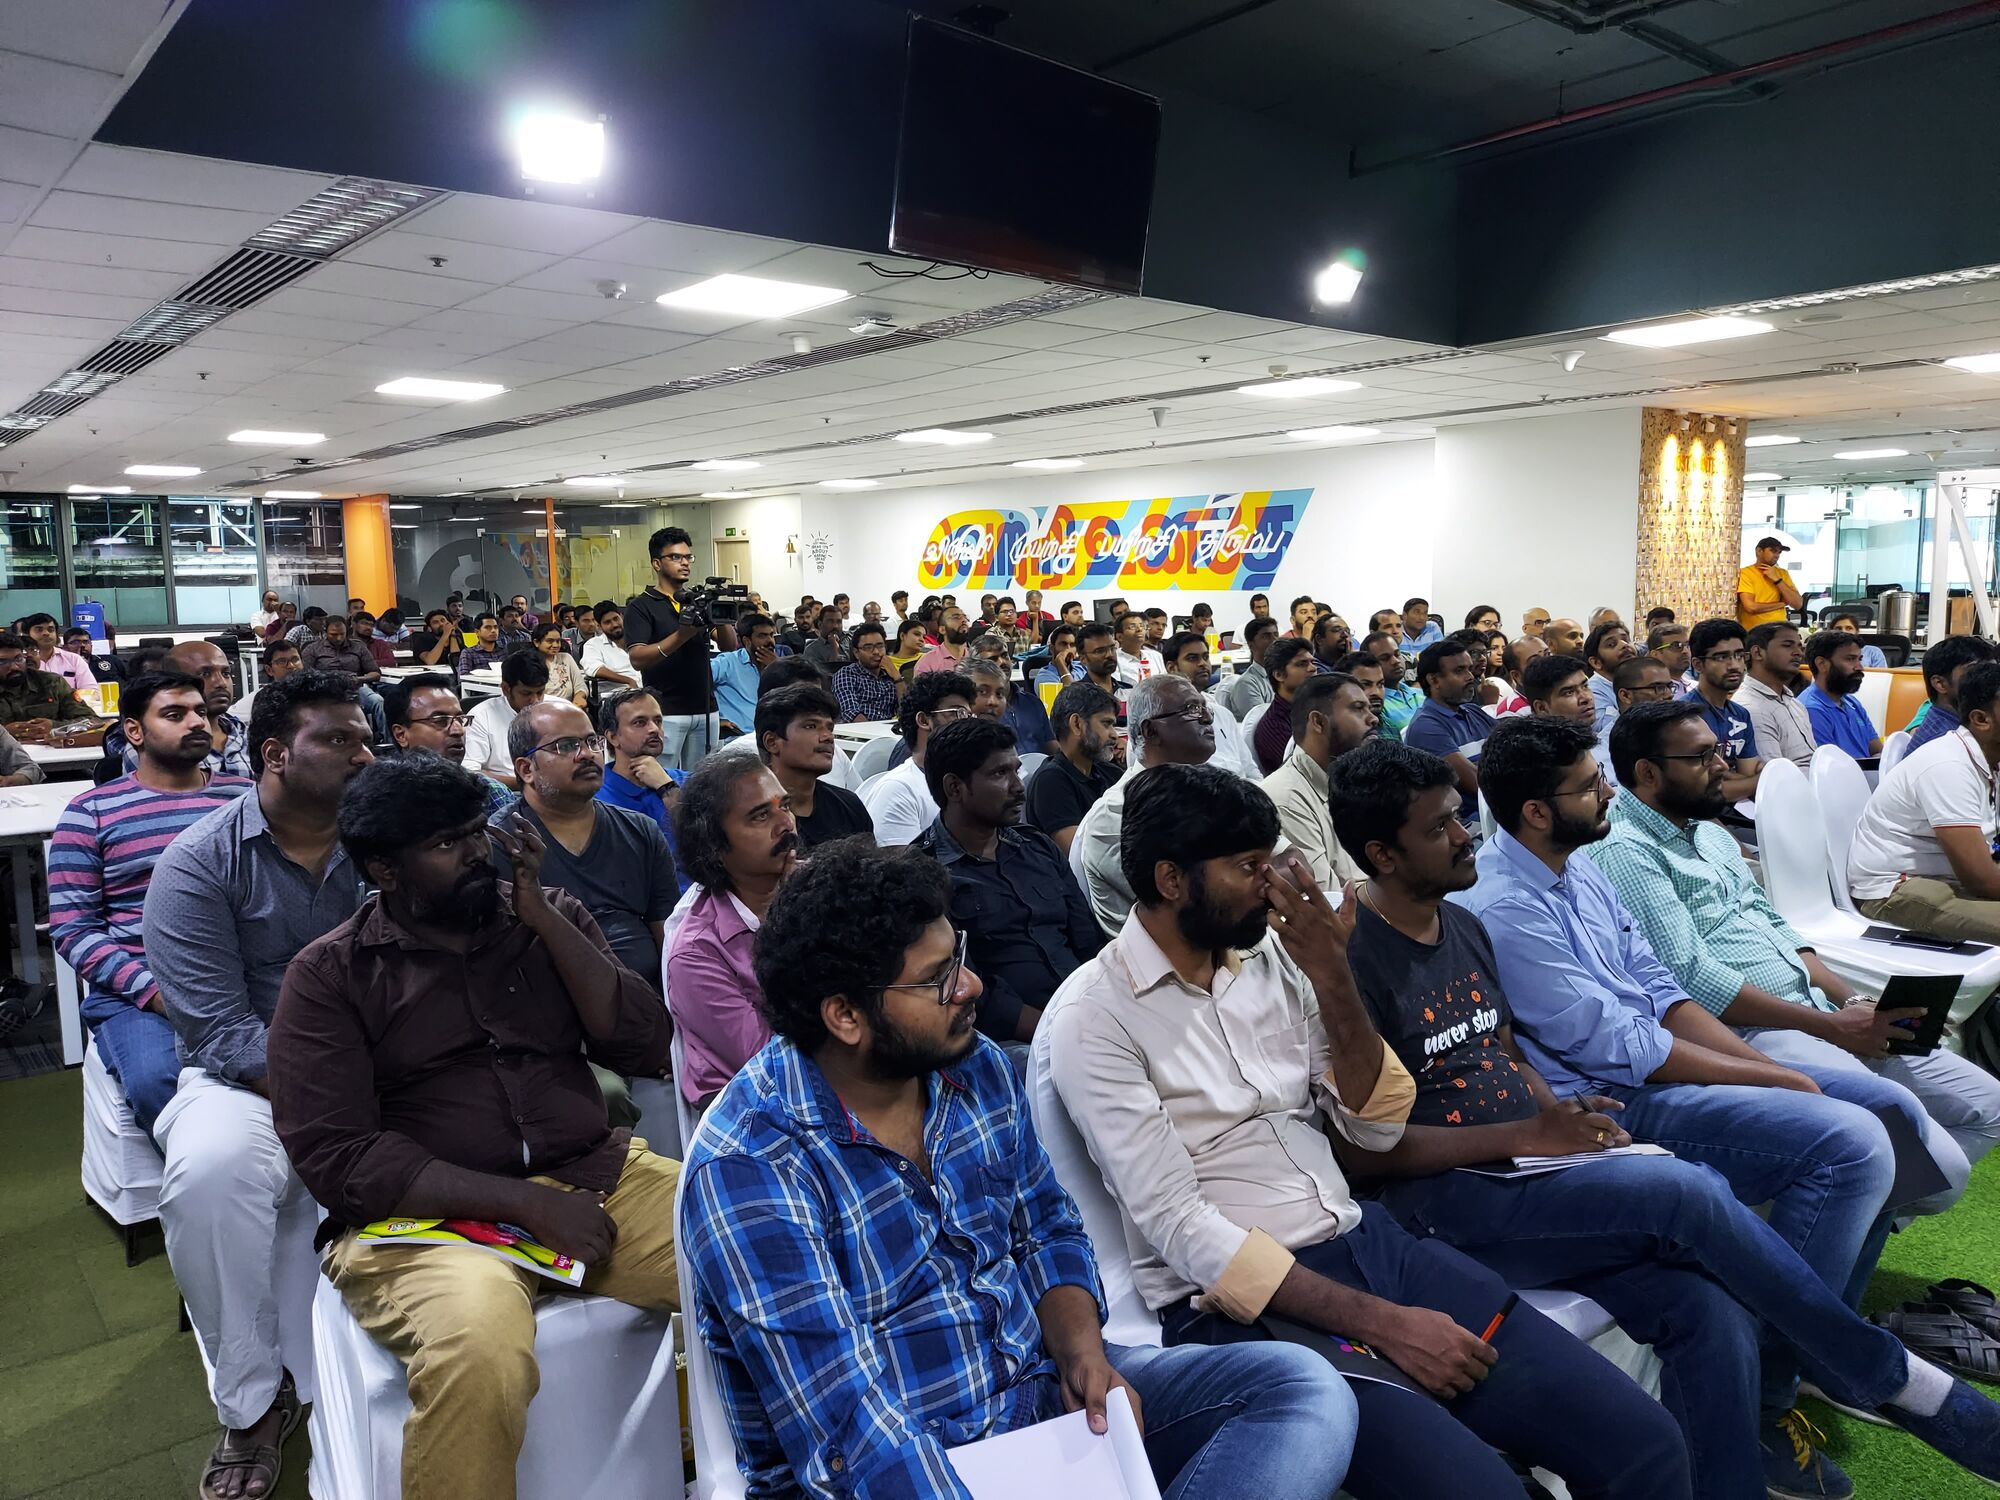 CTOTalk at Orangescape had a packed hall of over 200 participants today